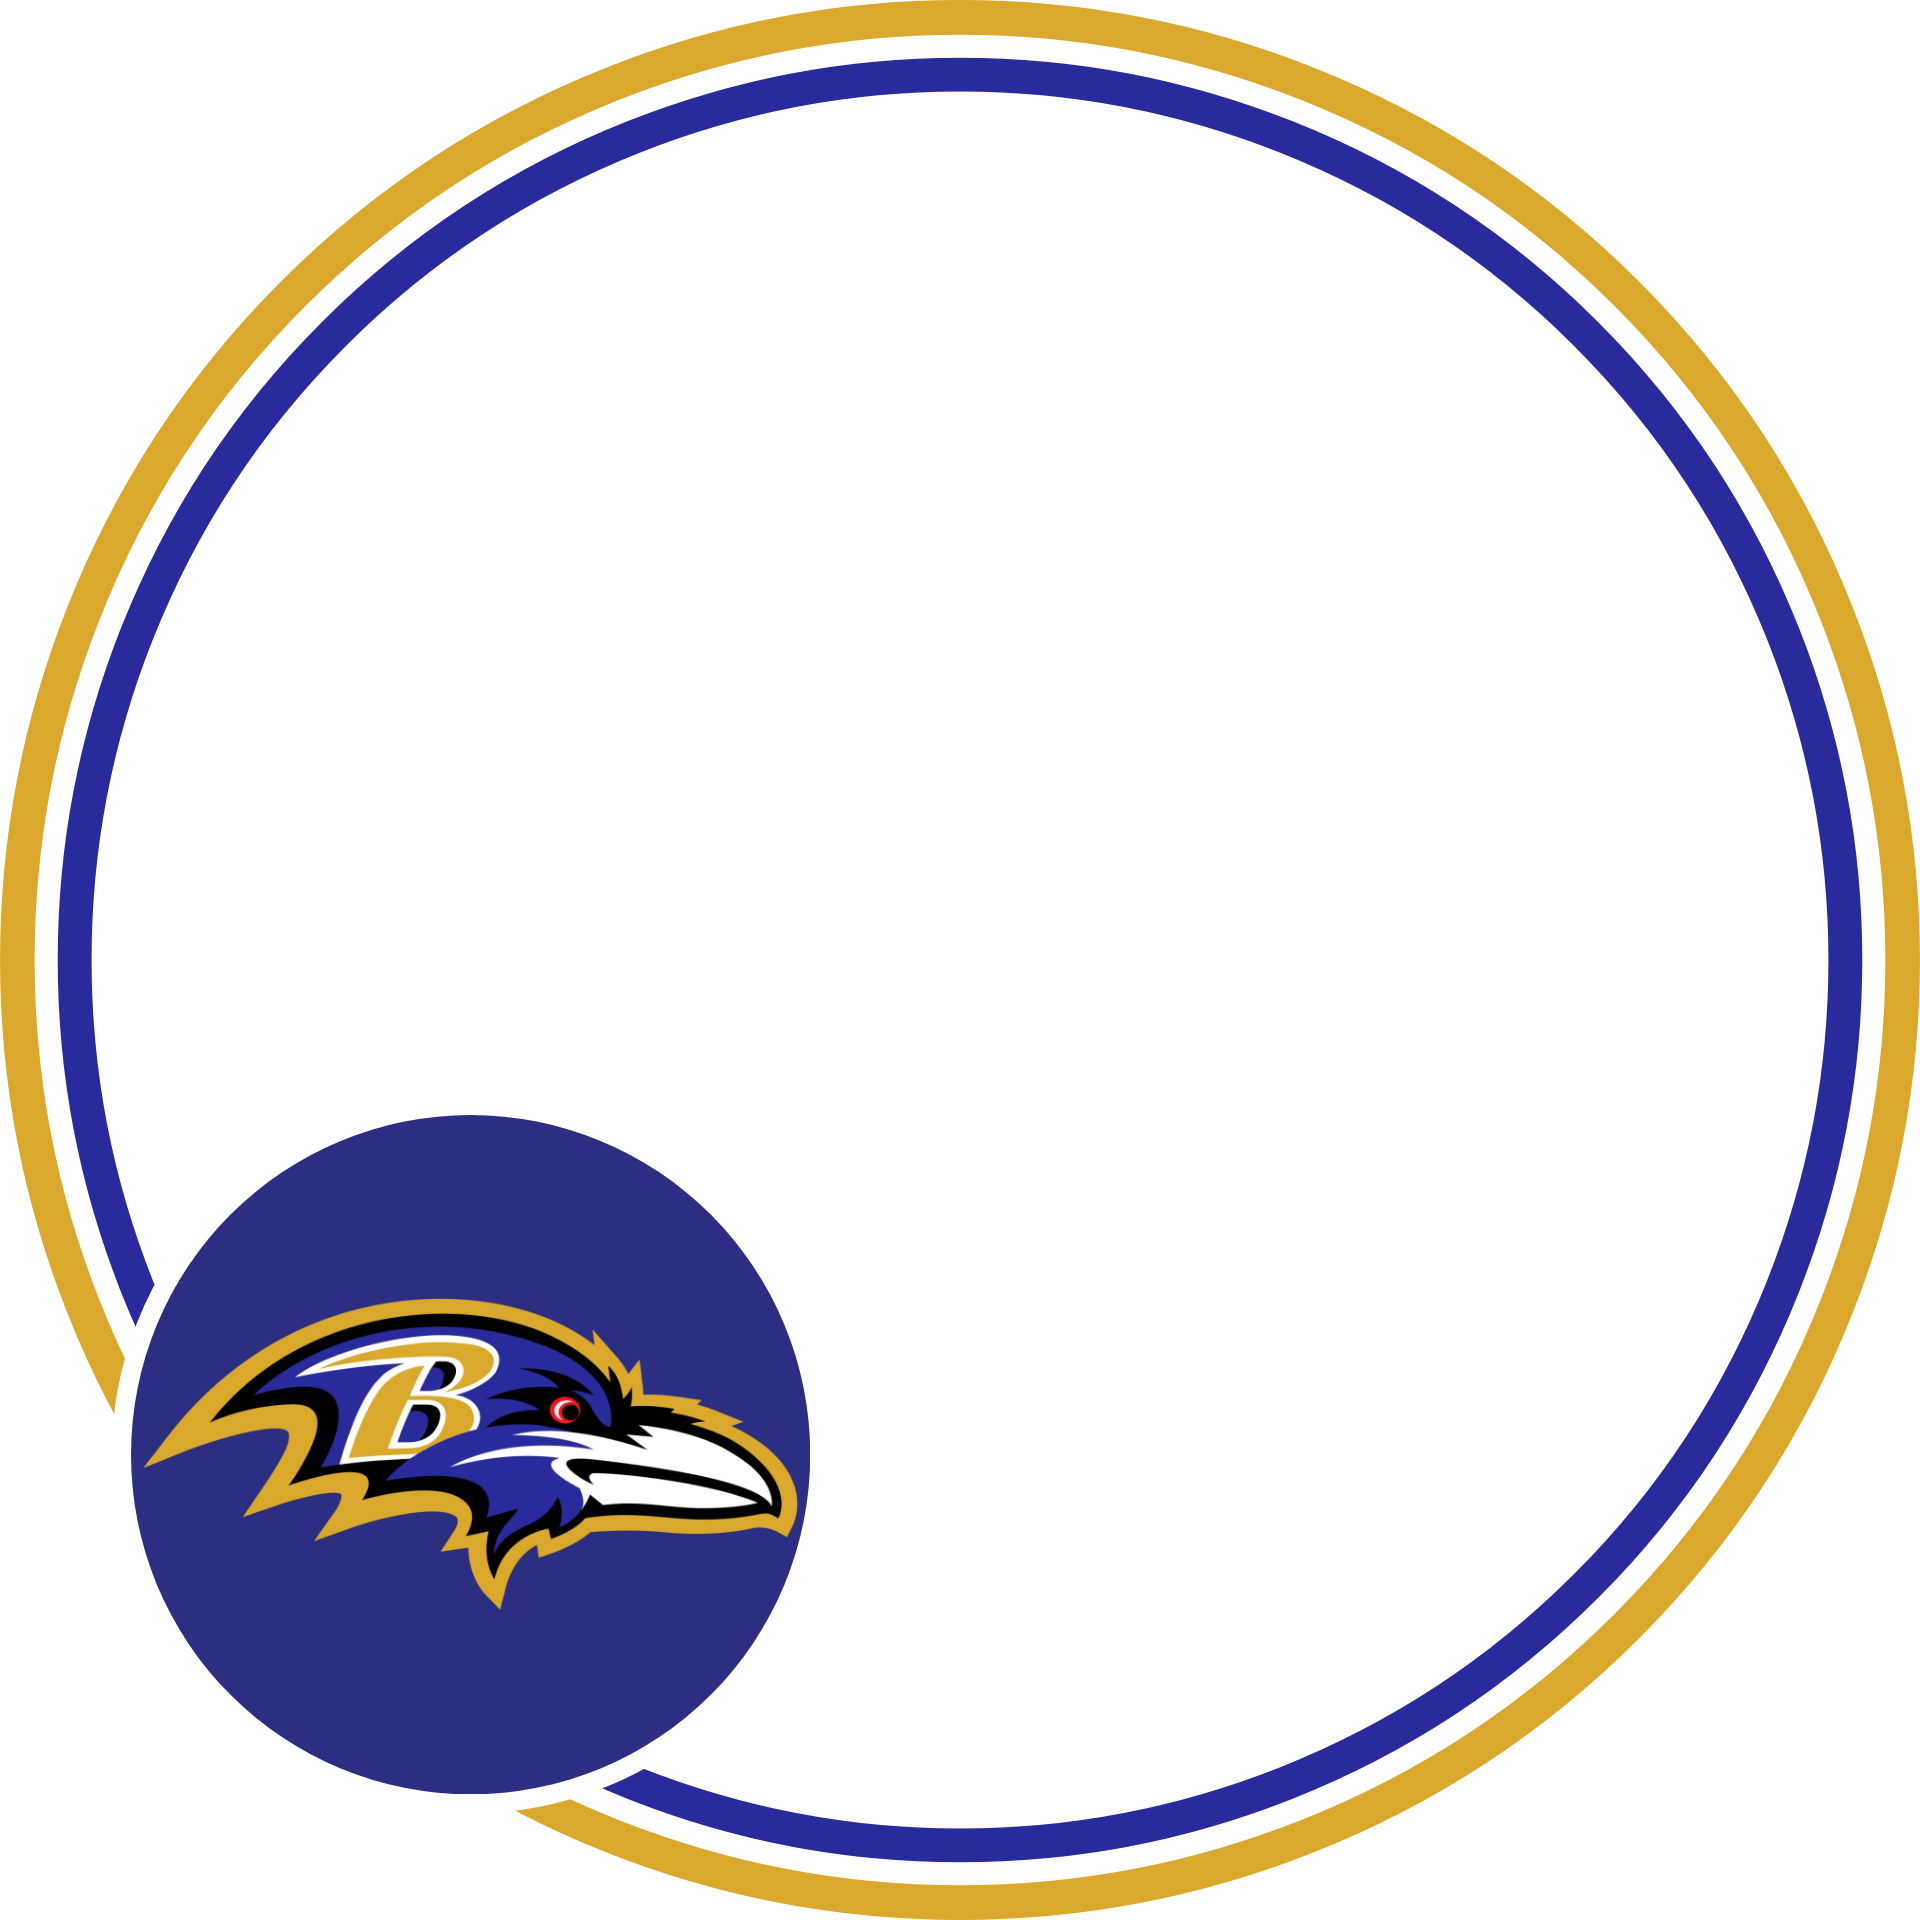 A transparent NFL profile picture frame for the Baltimore Ravens.